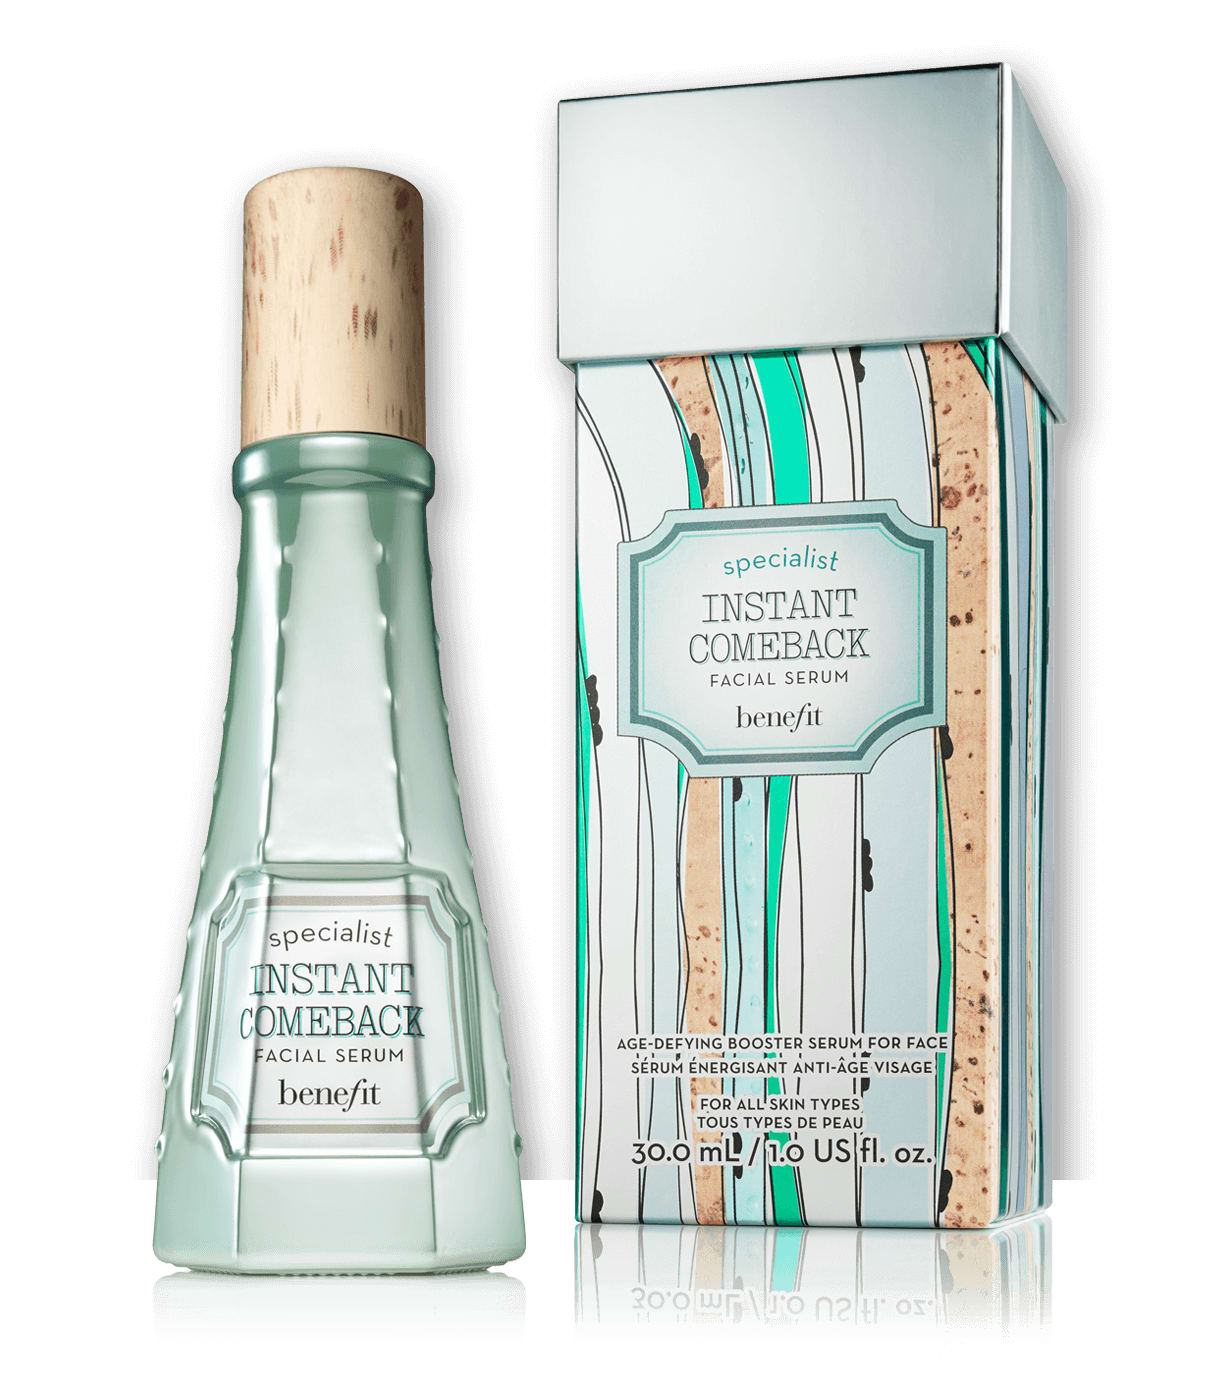 Benefit Cosmetics Instant Comeback Facial Serum